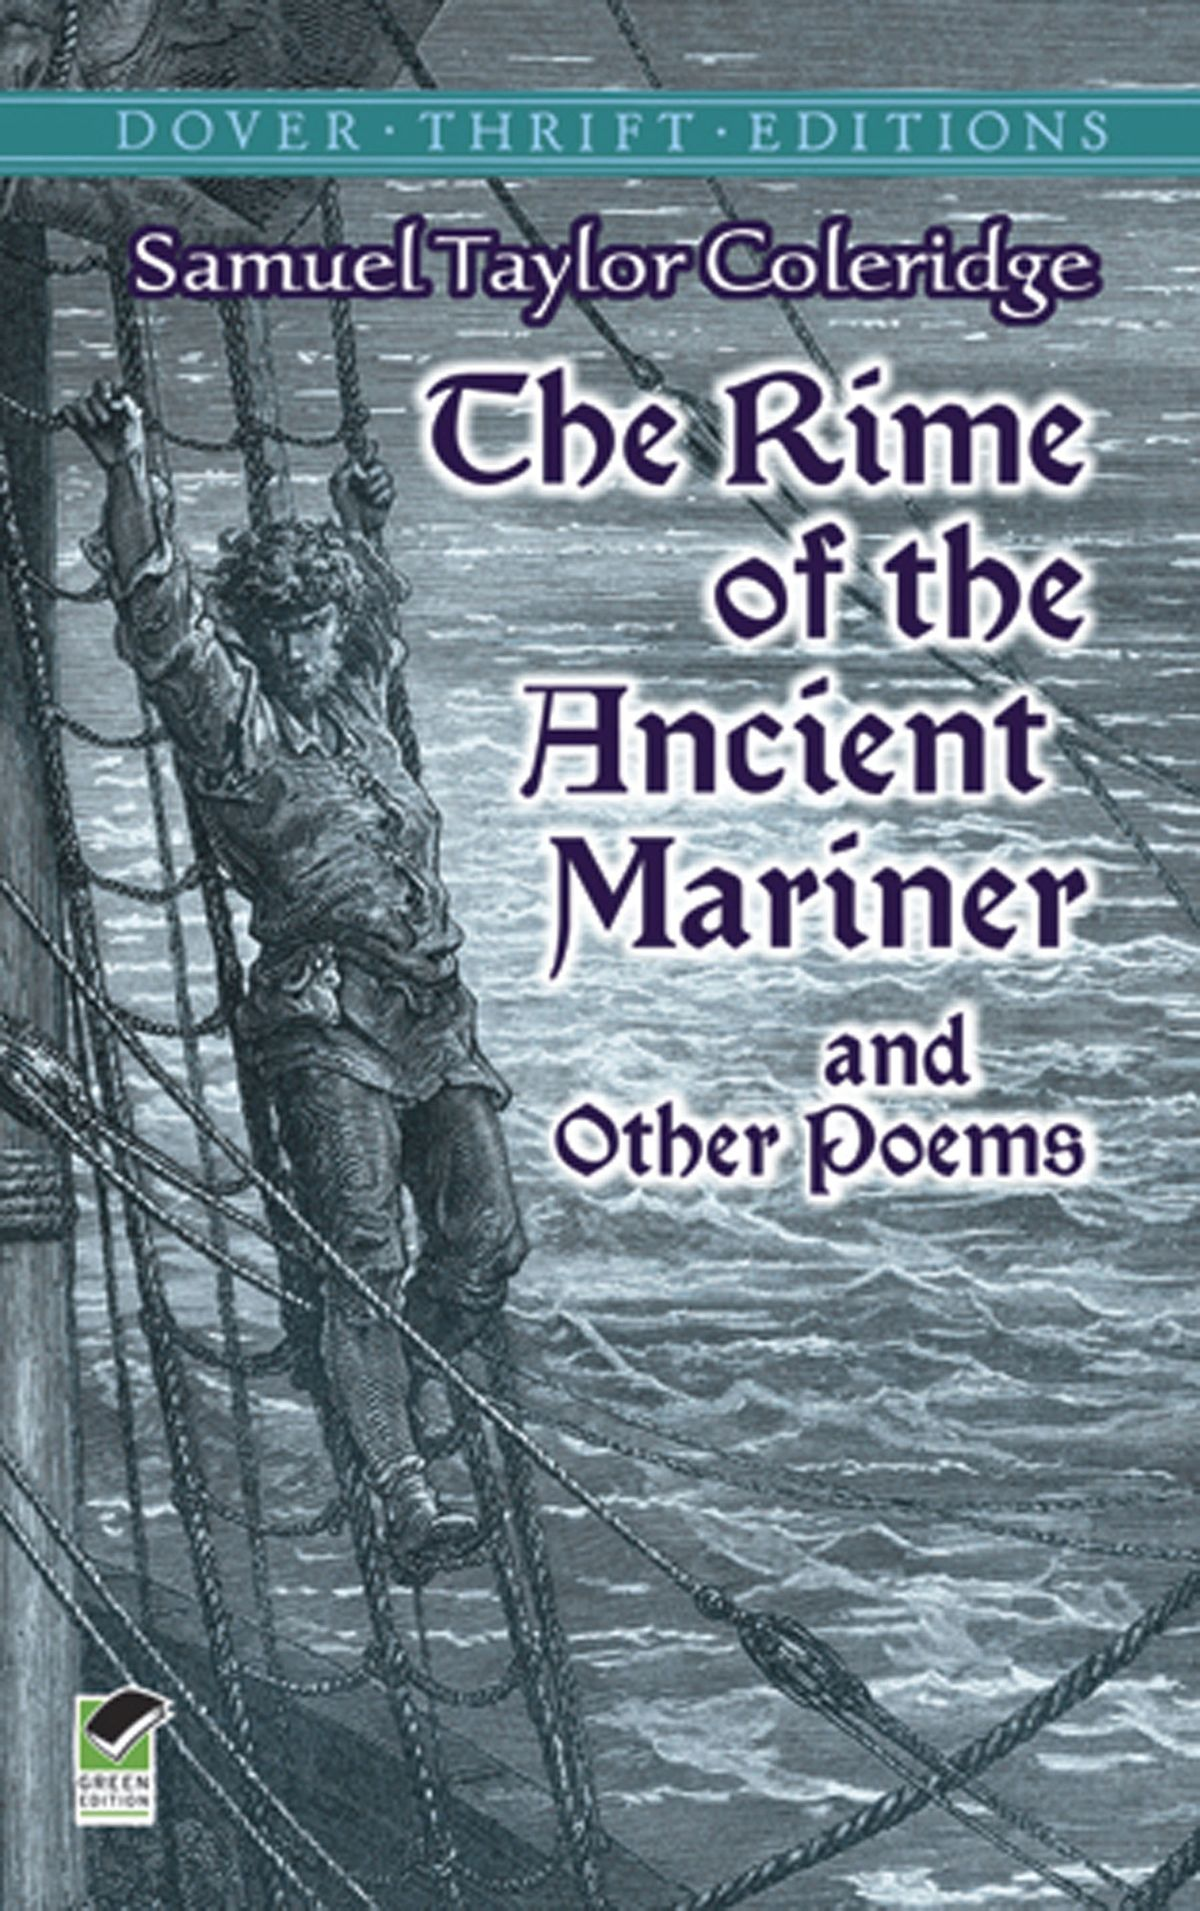 a literary comparison of the rime of the anicent mariner by samuel taylor coleridge and frankenstein Is most famous for his poem the rime of the ancient mariner  impact on frankenstein comparison of the ancient mariner- text samuel taylor coleridge.